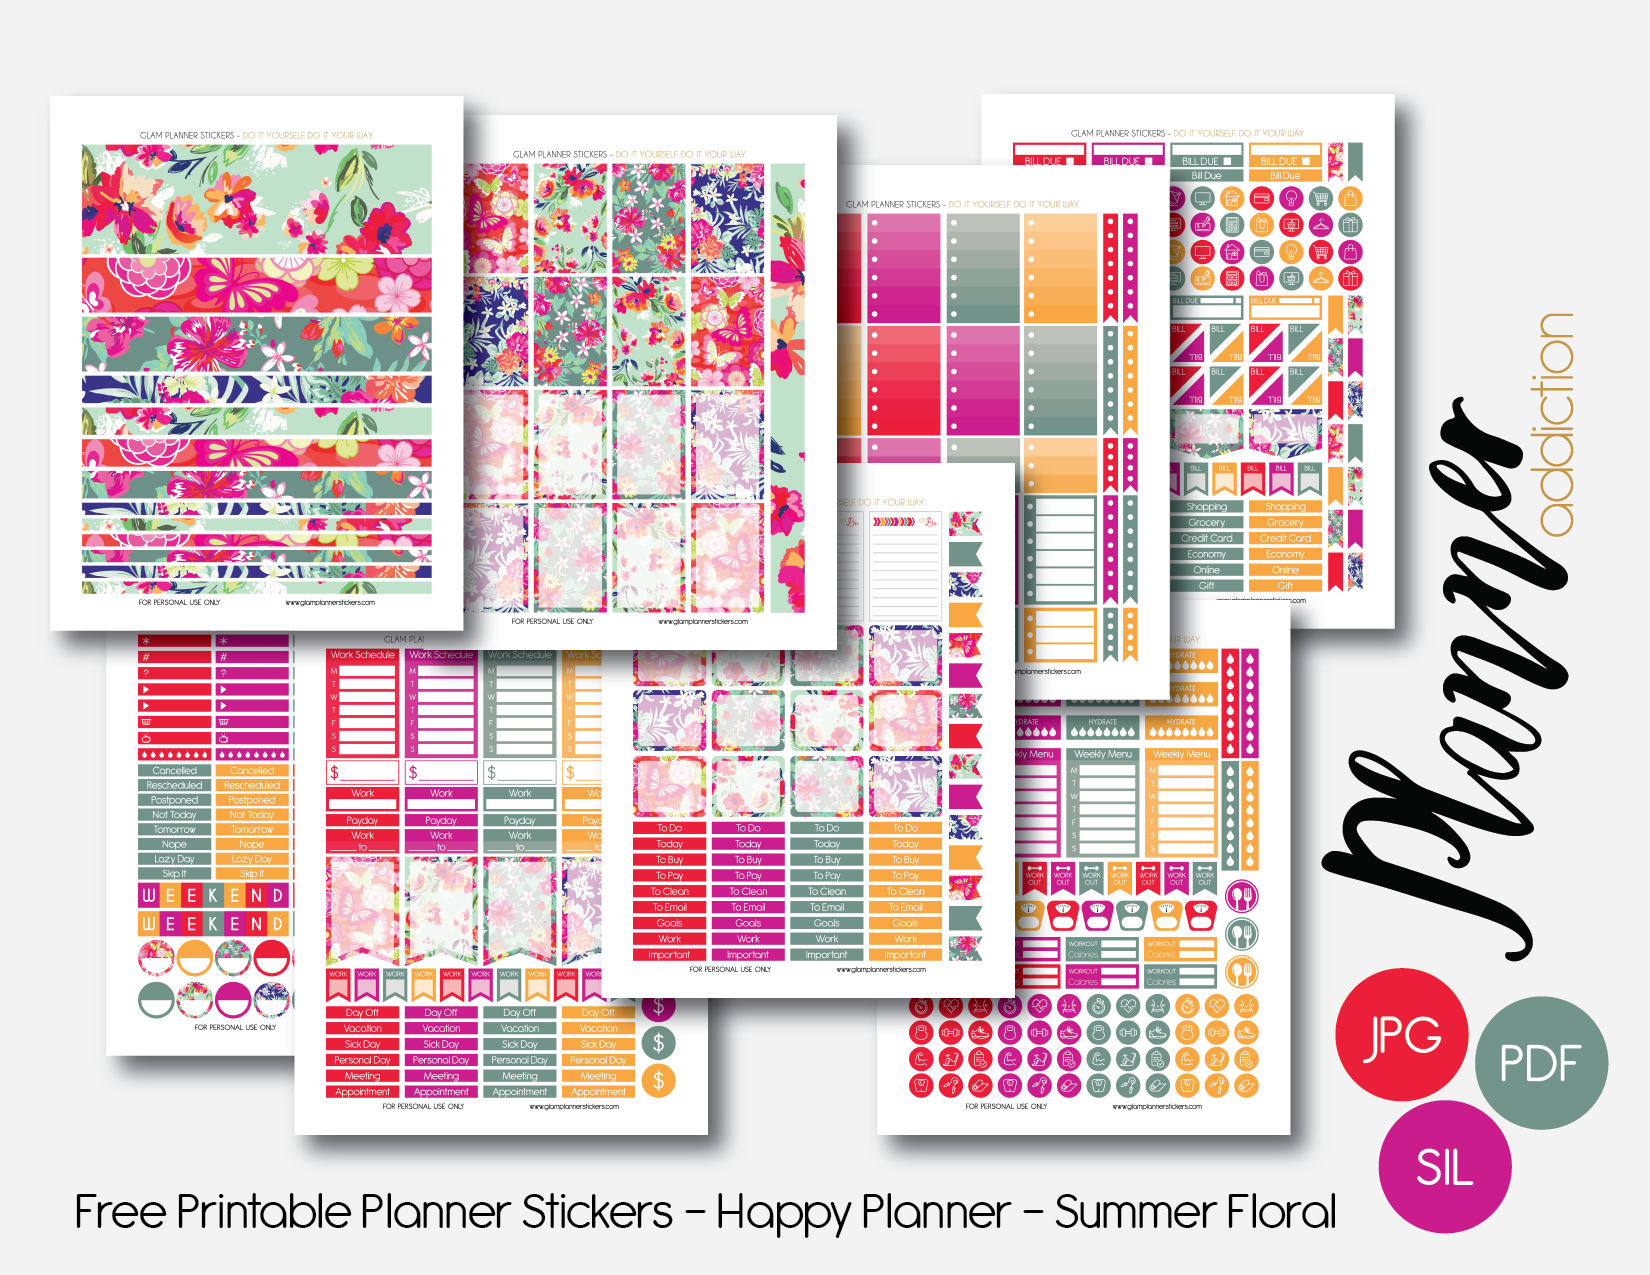 Free Printable Planner Stickers – Planner Addiction - Free Printable Stickers